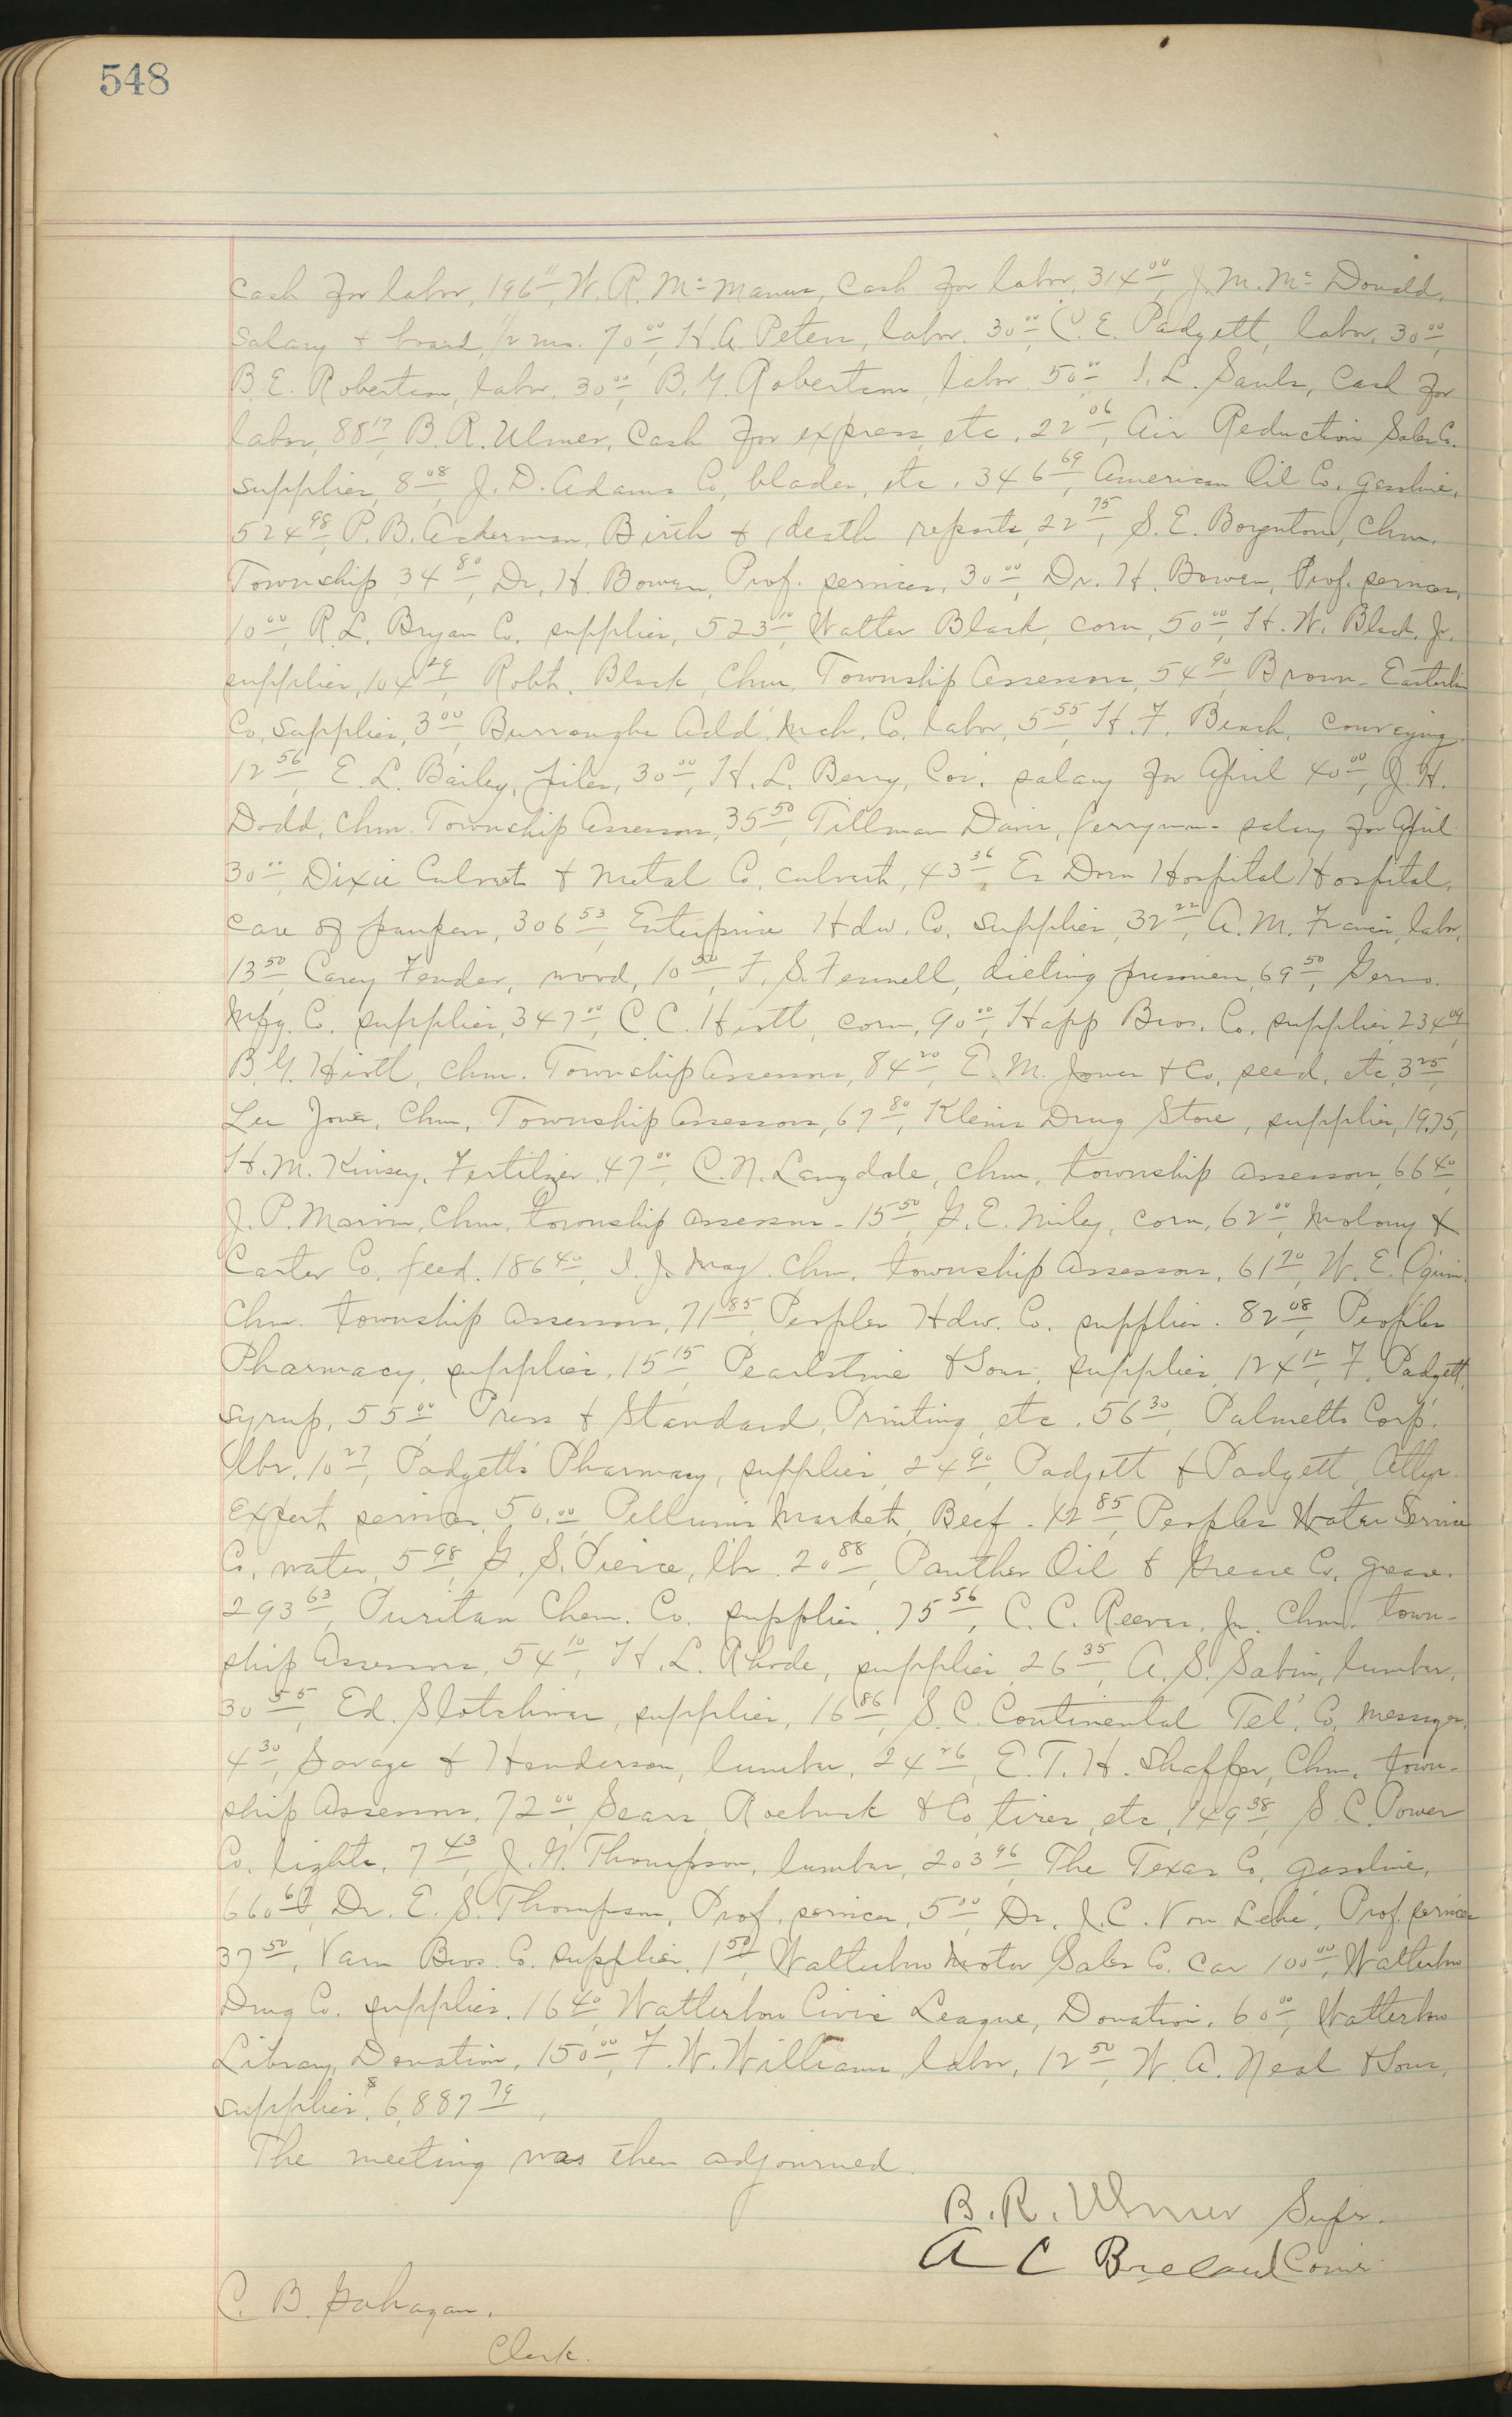 Colleton County Highway Commission Ledger, Page 548